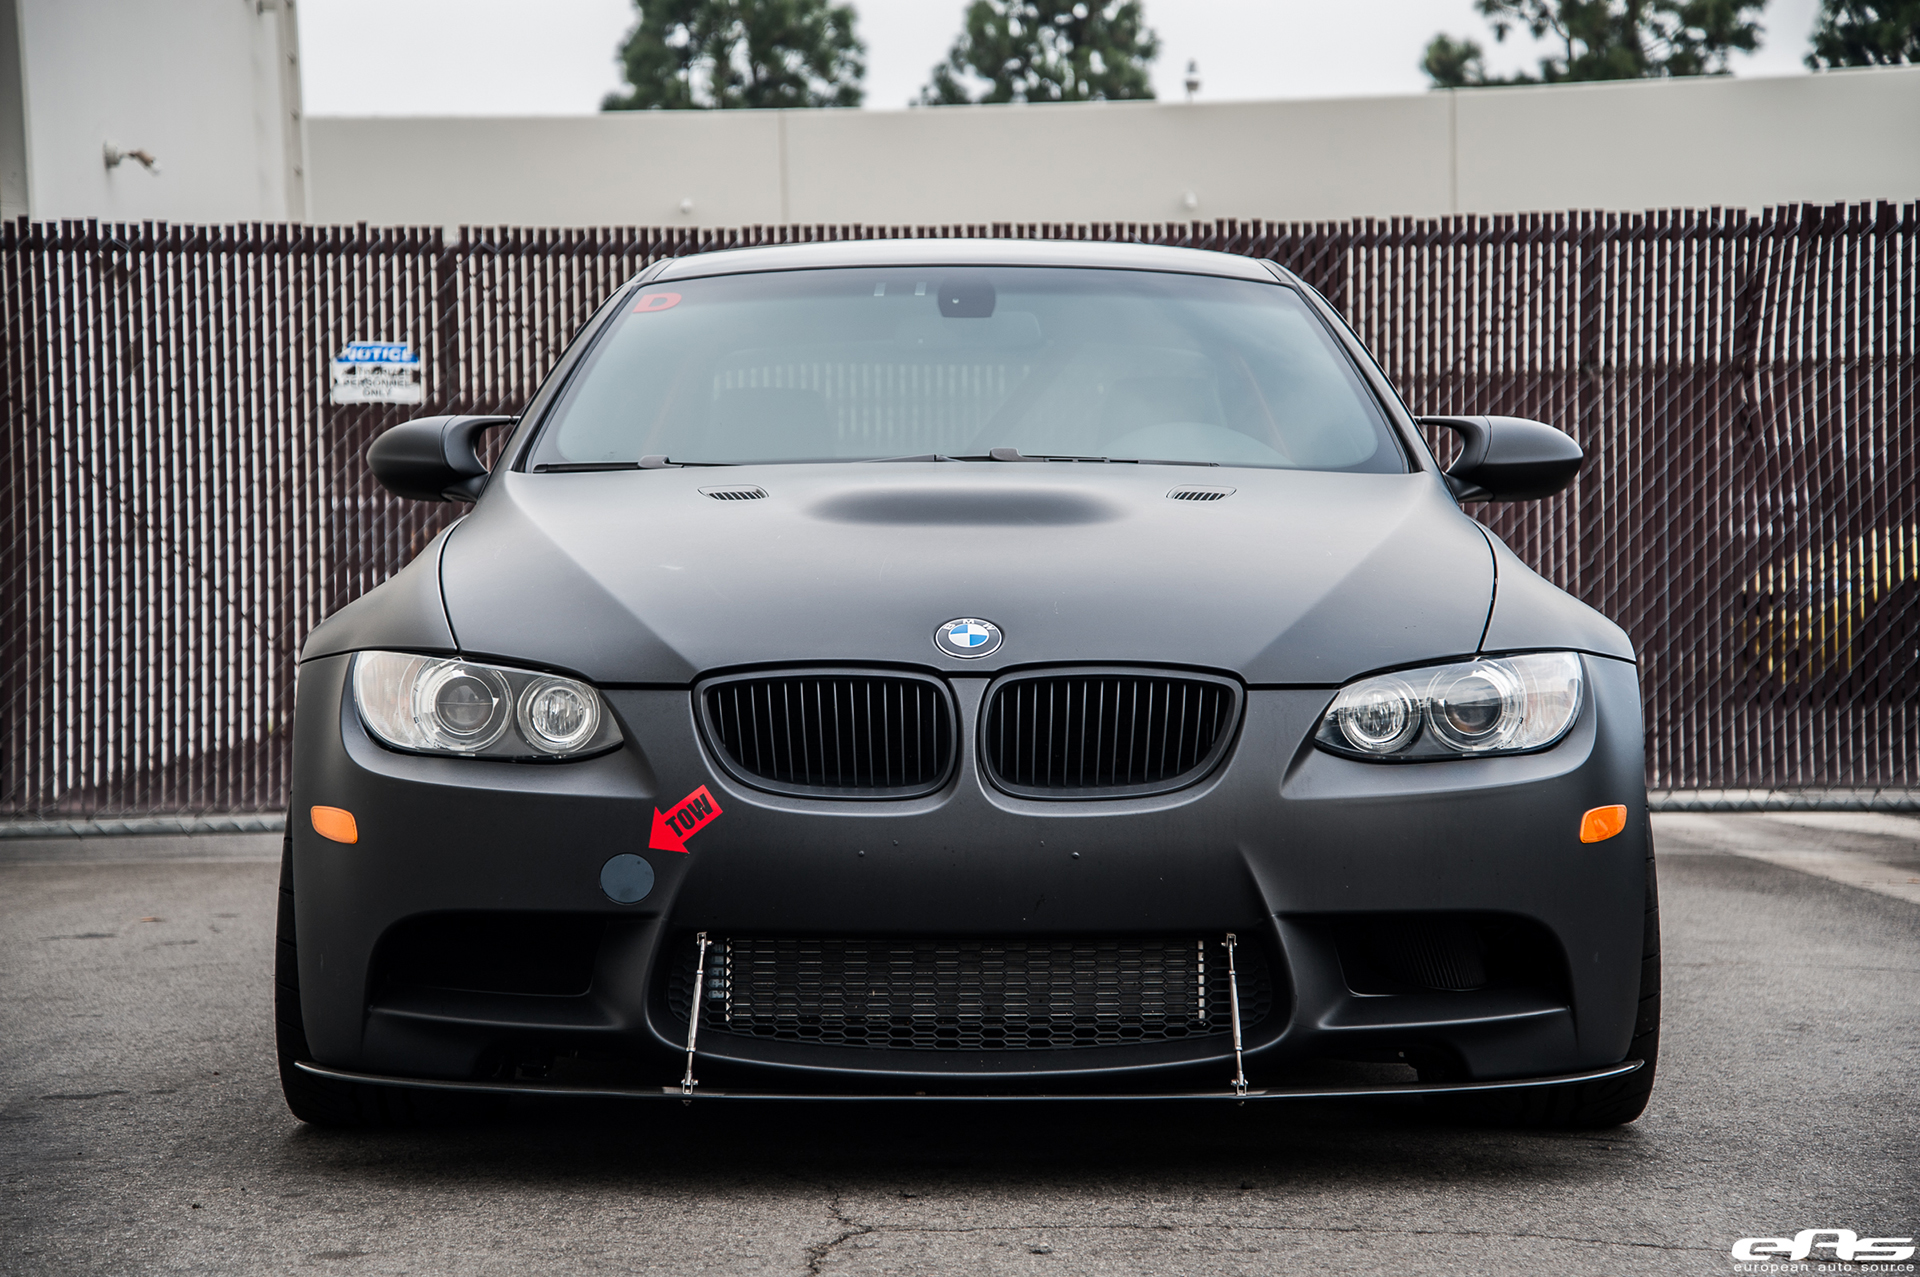 A Matte Black Beast Of A Bmw M3 By European Auto Source